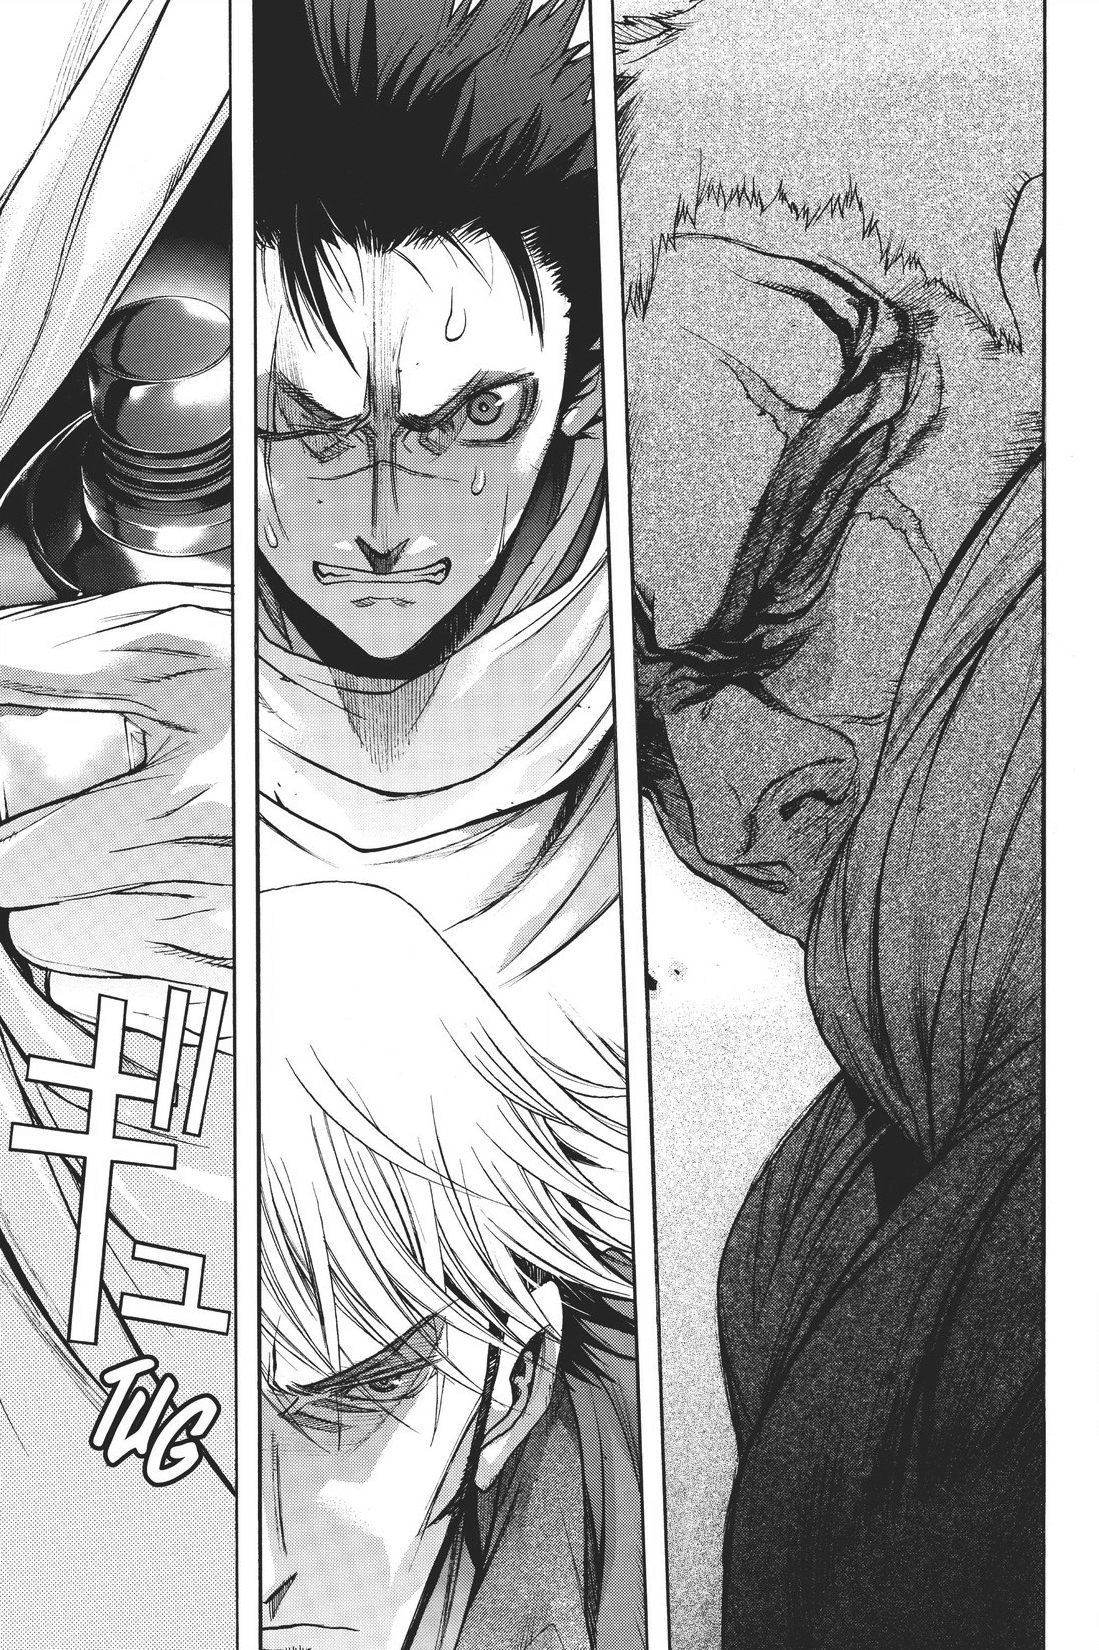 Read online Attack on Titan: Before the Fall comic -  Issue #3 - 137